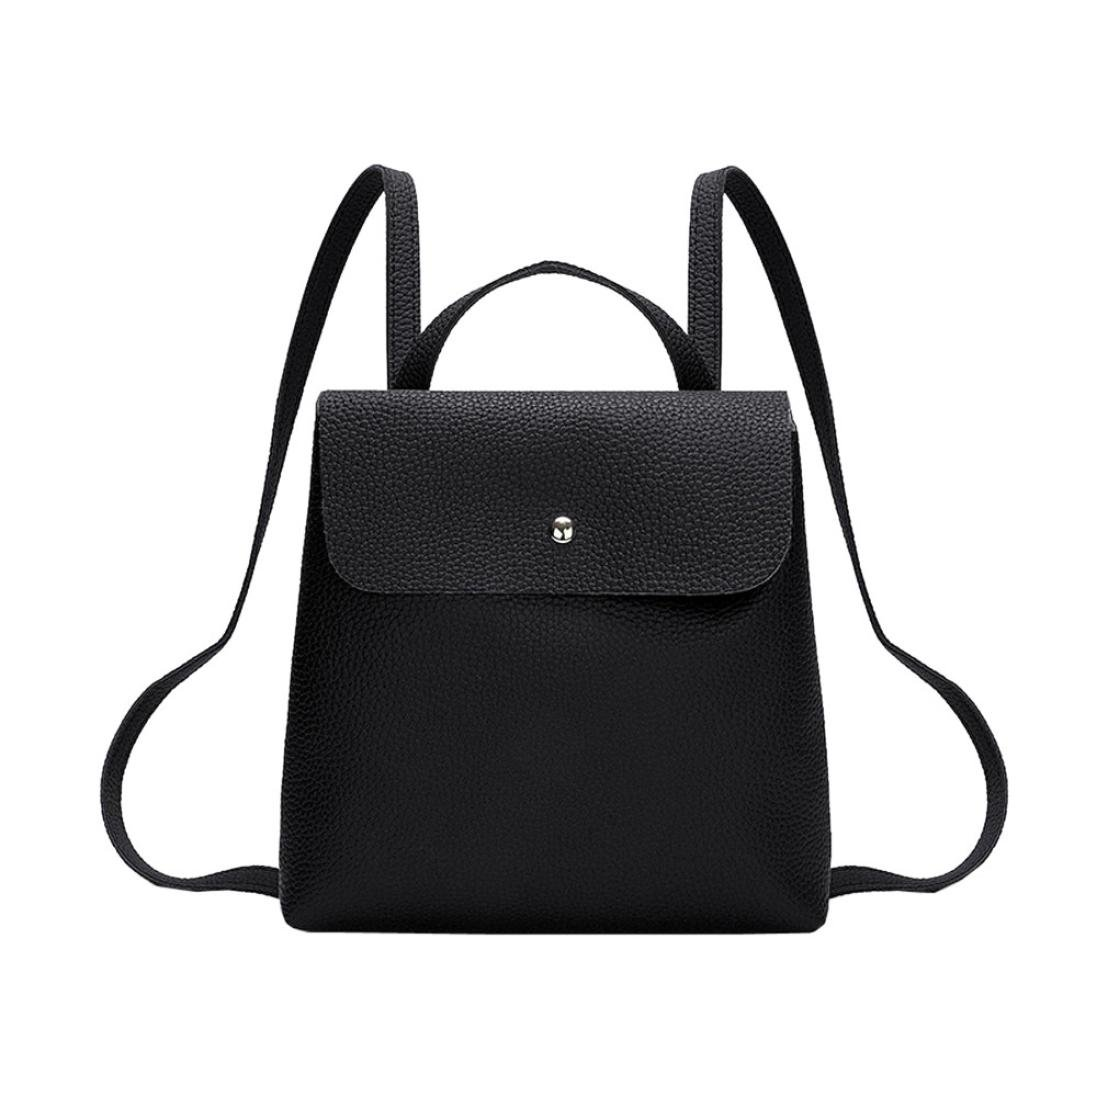 Clearance Sales!! ZOMUSAR Women Girl Pure Color School Bag Travel Cute PU Leather Mini Backpack Women Girl Pure Color School Bag Travel Cute PU Leather Mini Backpack (Black) by ZOMUSAR (Image #2)